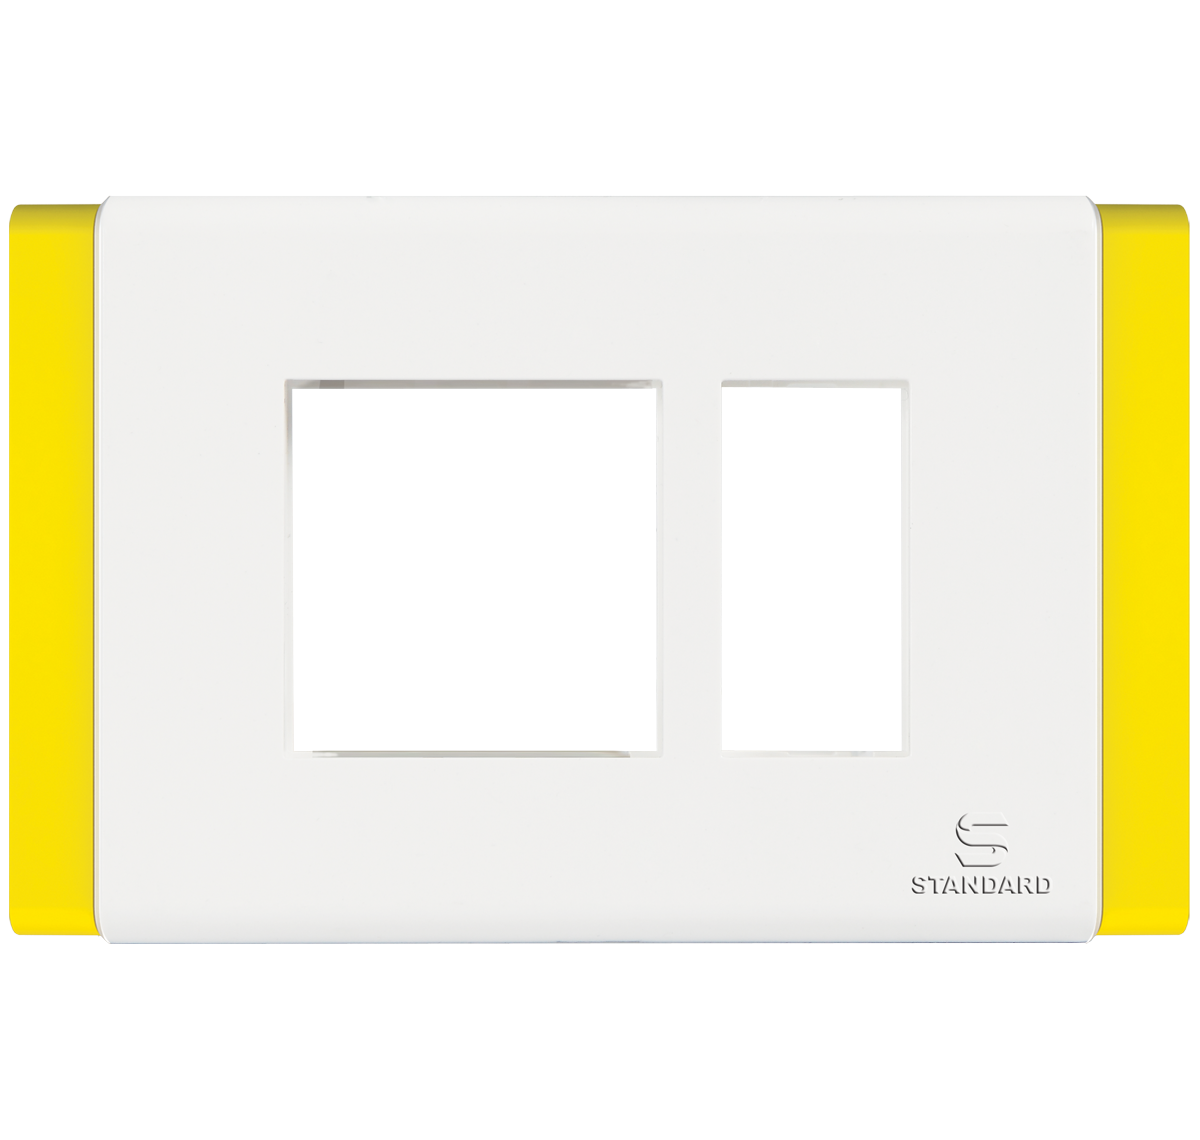 Standard - 3-m-lemon-yellow-cover-plate